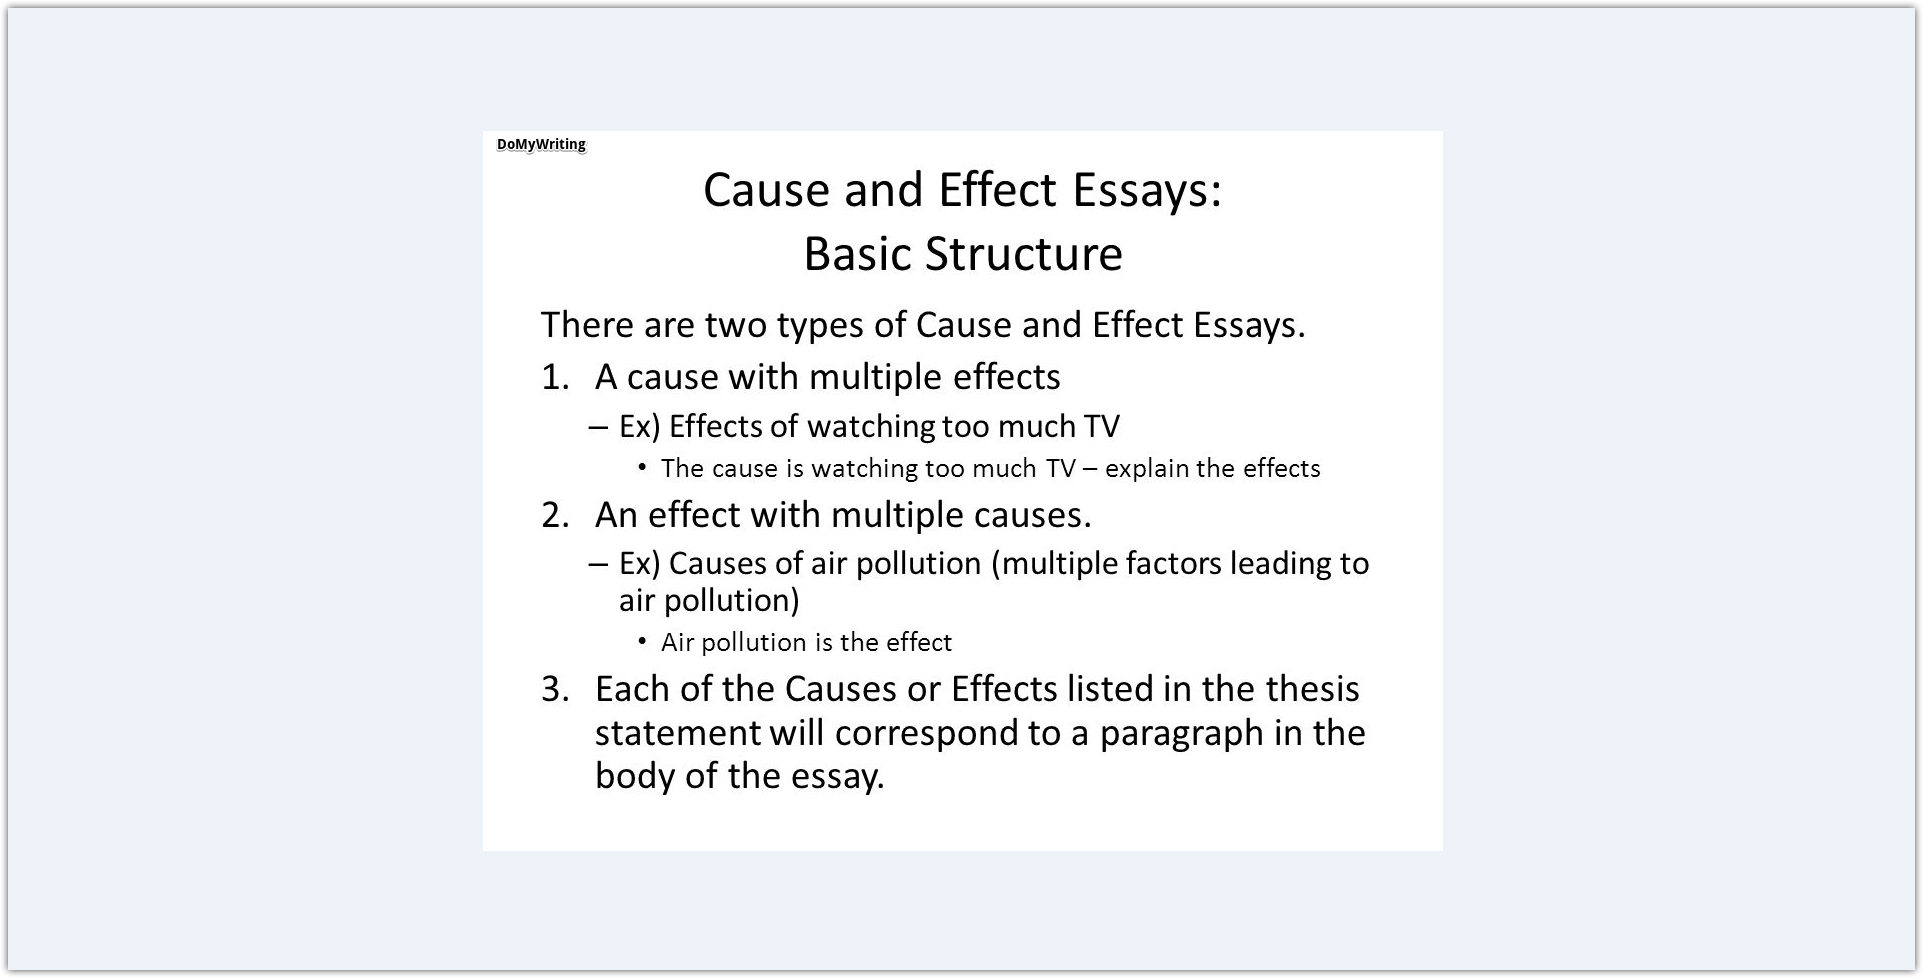 013 Cause And Effect Essay Topics Structure Dreaded Thesis Statement For On Bullying Examples 6th Grade Example Pollution Full